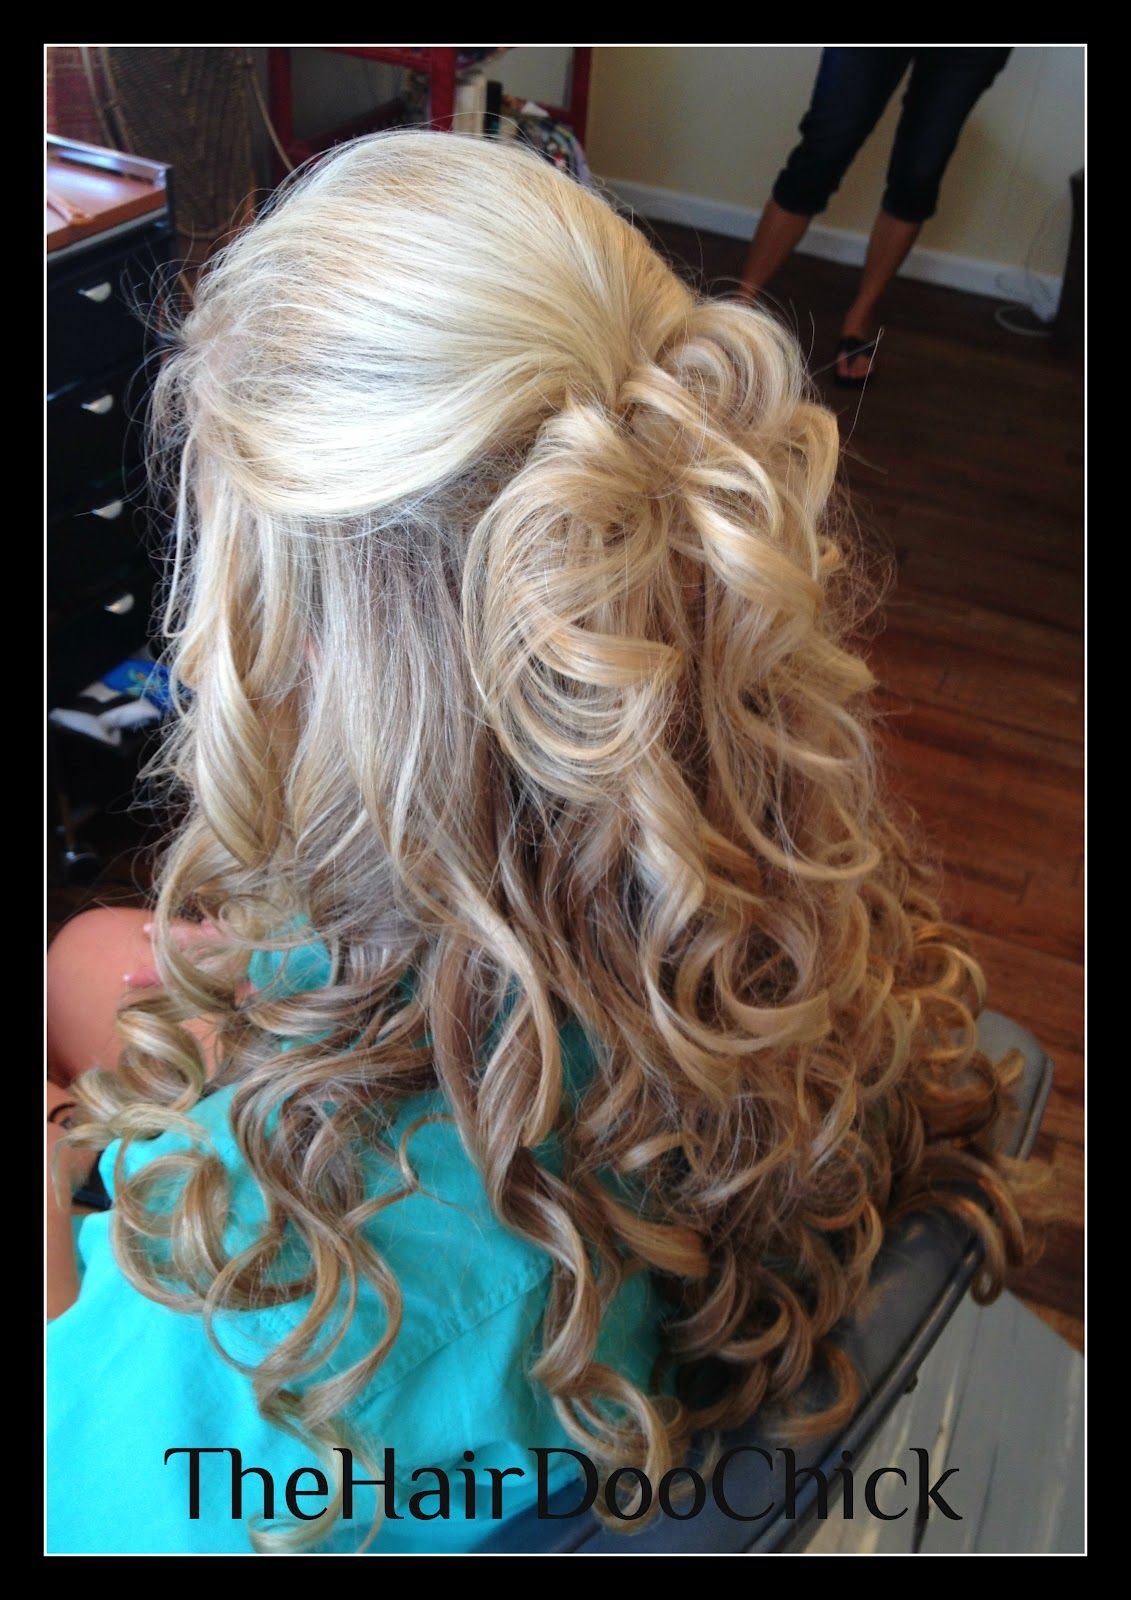 The hair doo chick prom hair ideas for prom pinterest prom